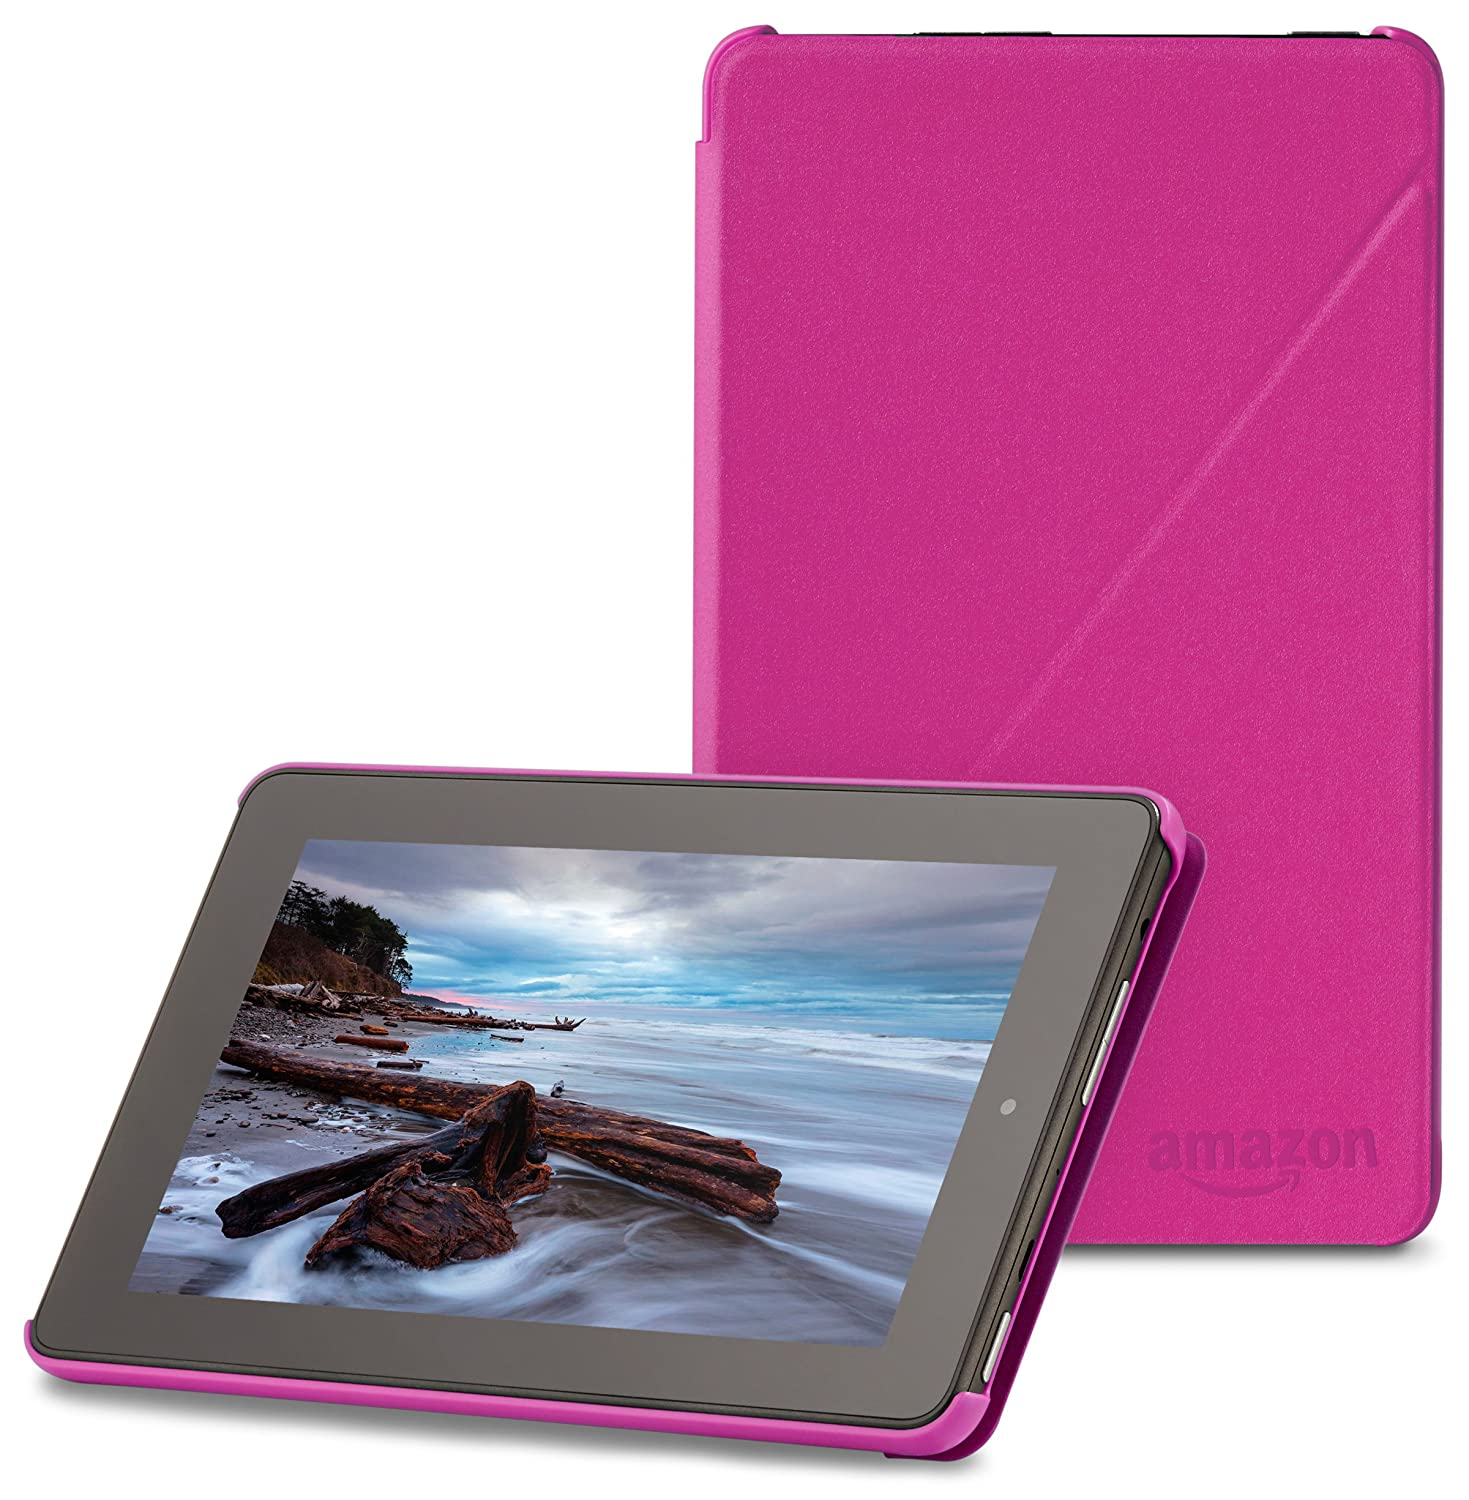 "Amazon Fire 7"" (2015 release) Case - Slim Lightweight Standing Custom Fit Cover for Amazon Fire 7 Inch Tablet, Magenta"